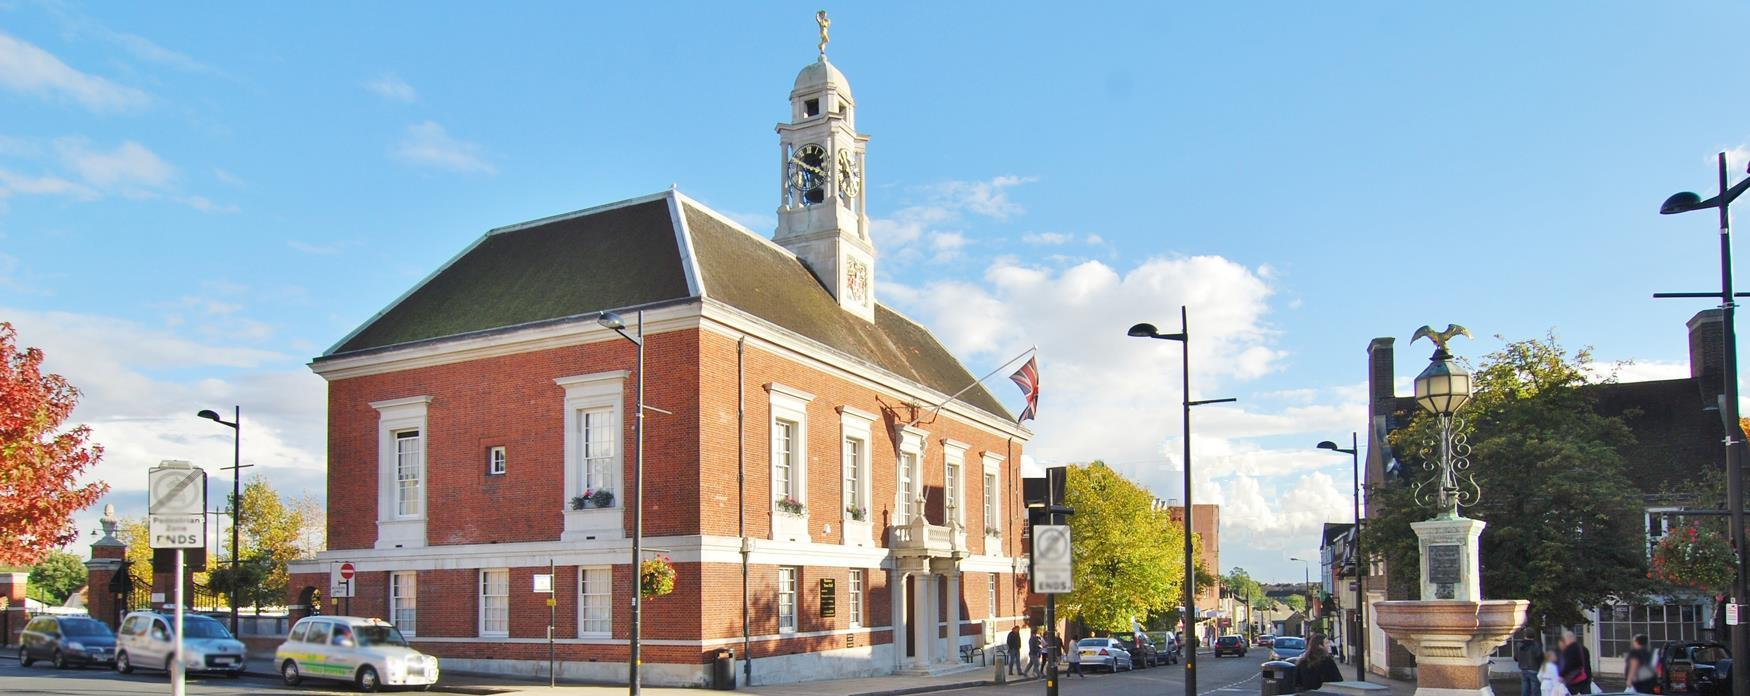 Photograph of Grade 2 Listed Braintree Town Hall